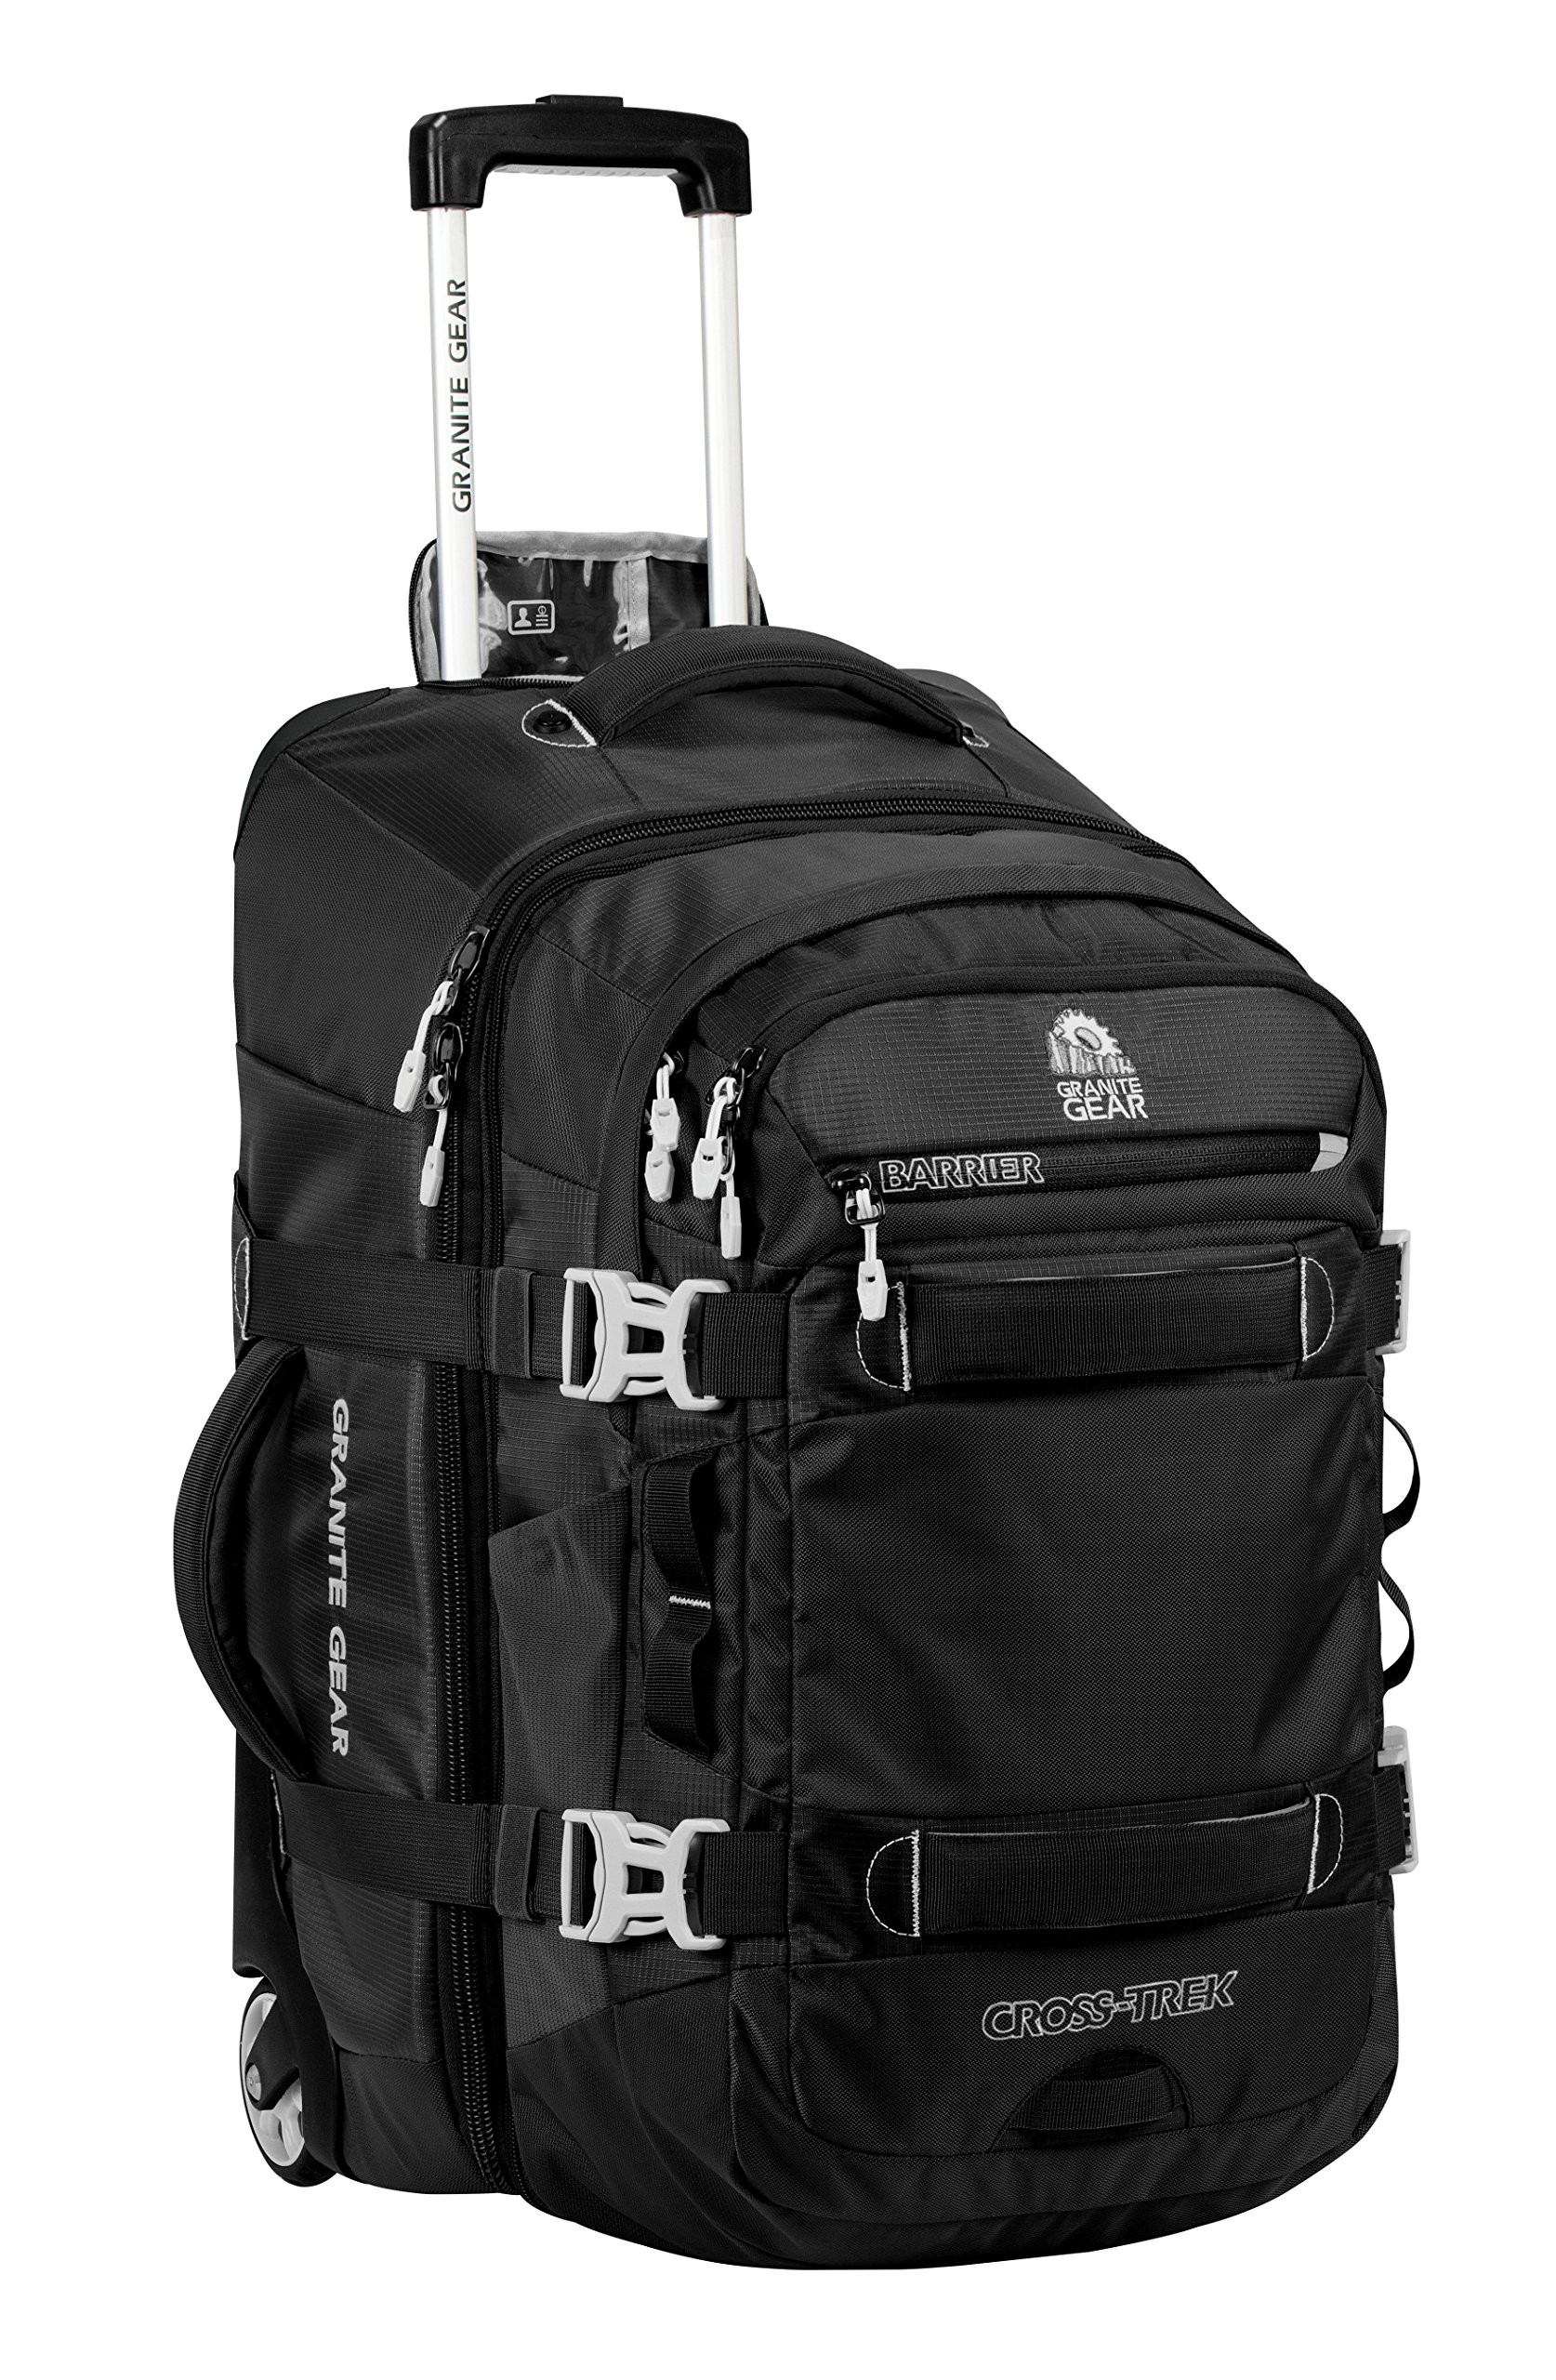 Granite Gear Cross-Trek Wheeled Carry-On with Removable 28L Pack - Black/Chromium